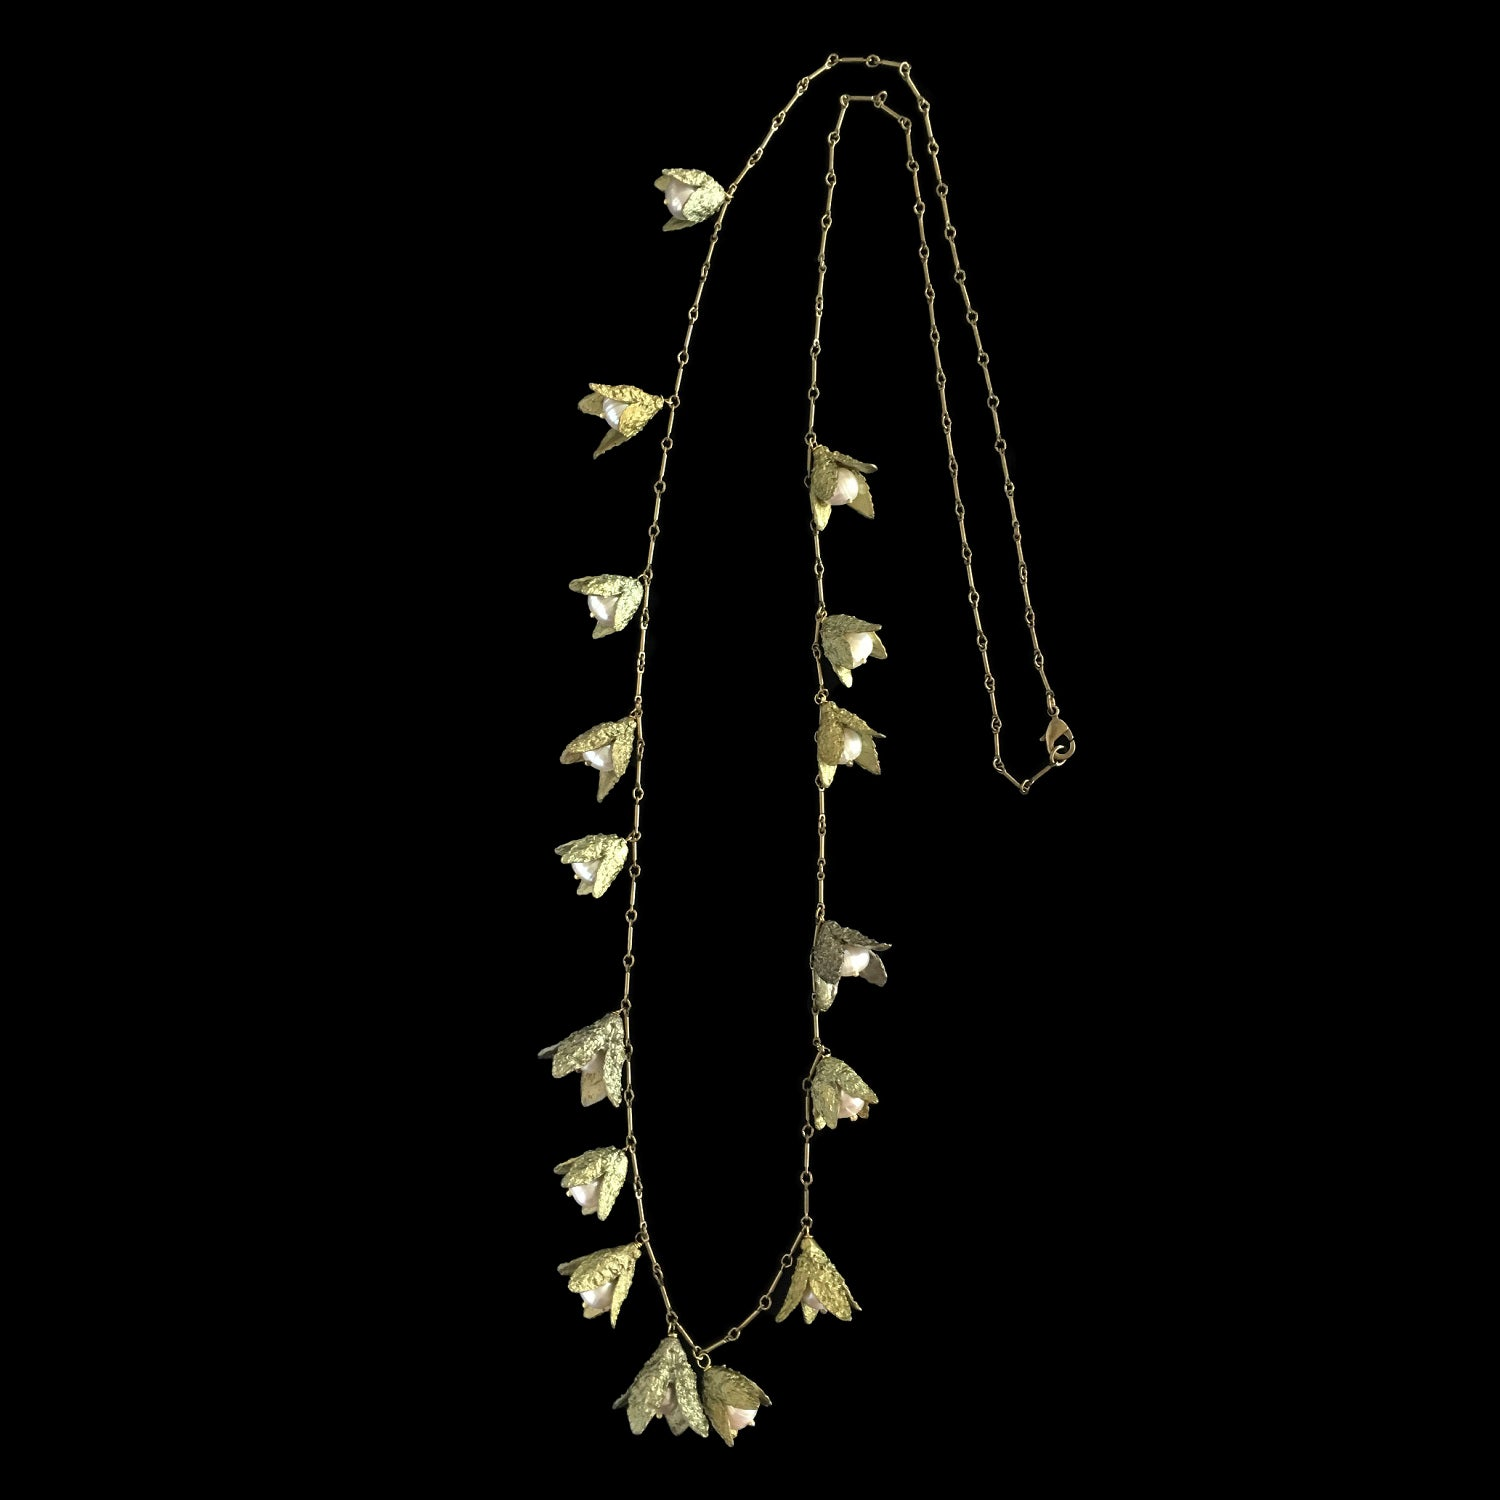 "Beech Nut Necklace - 36"" Long"